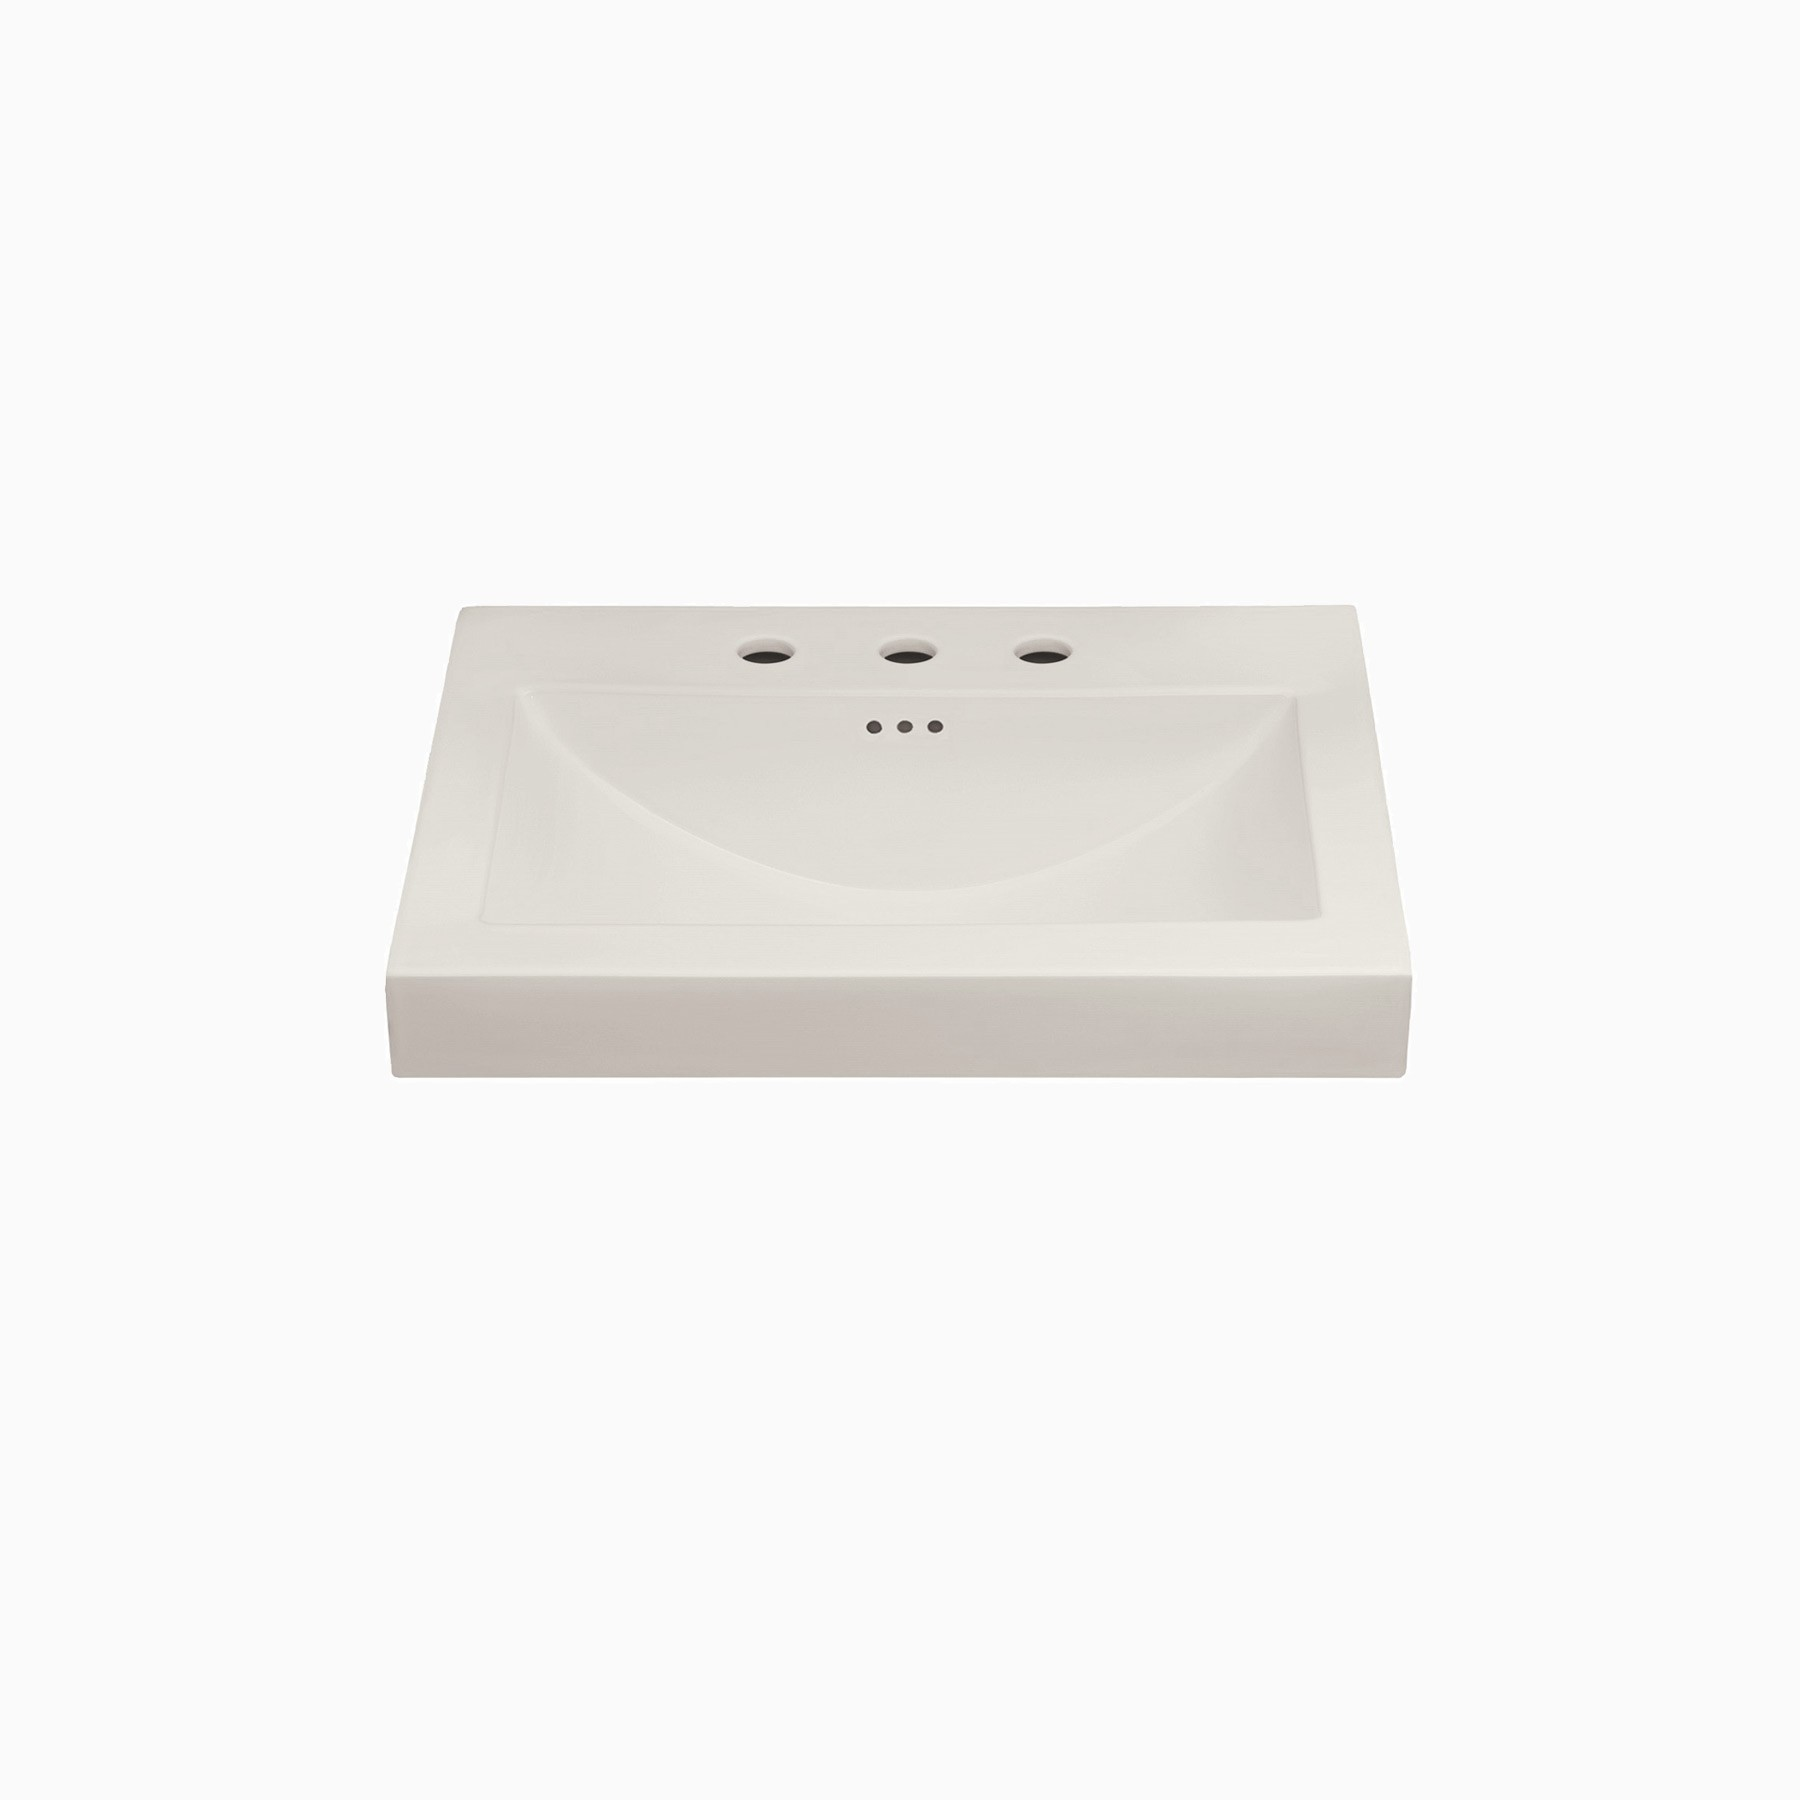 24 w x 20 d leith ceramic single vanity top with integrated sink and 8 widespread faucet hole biscuit